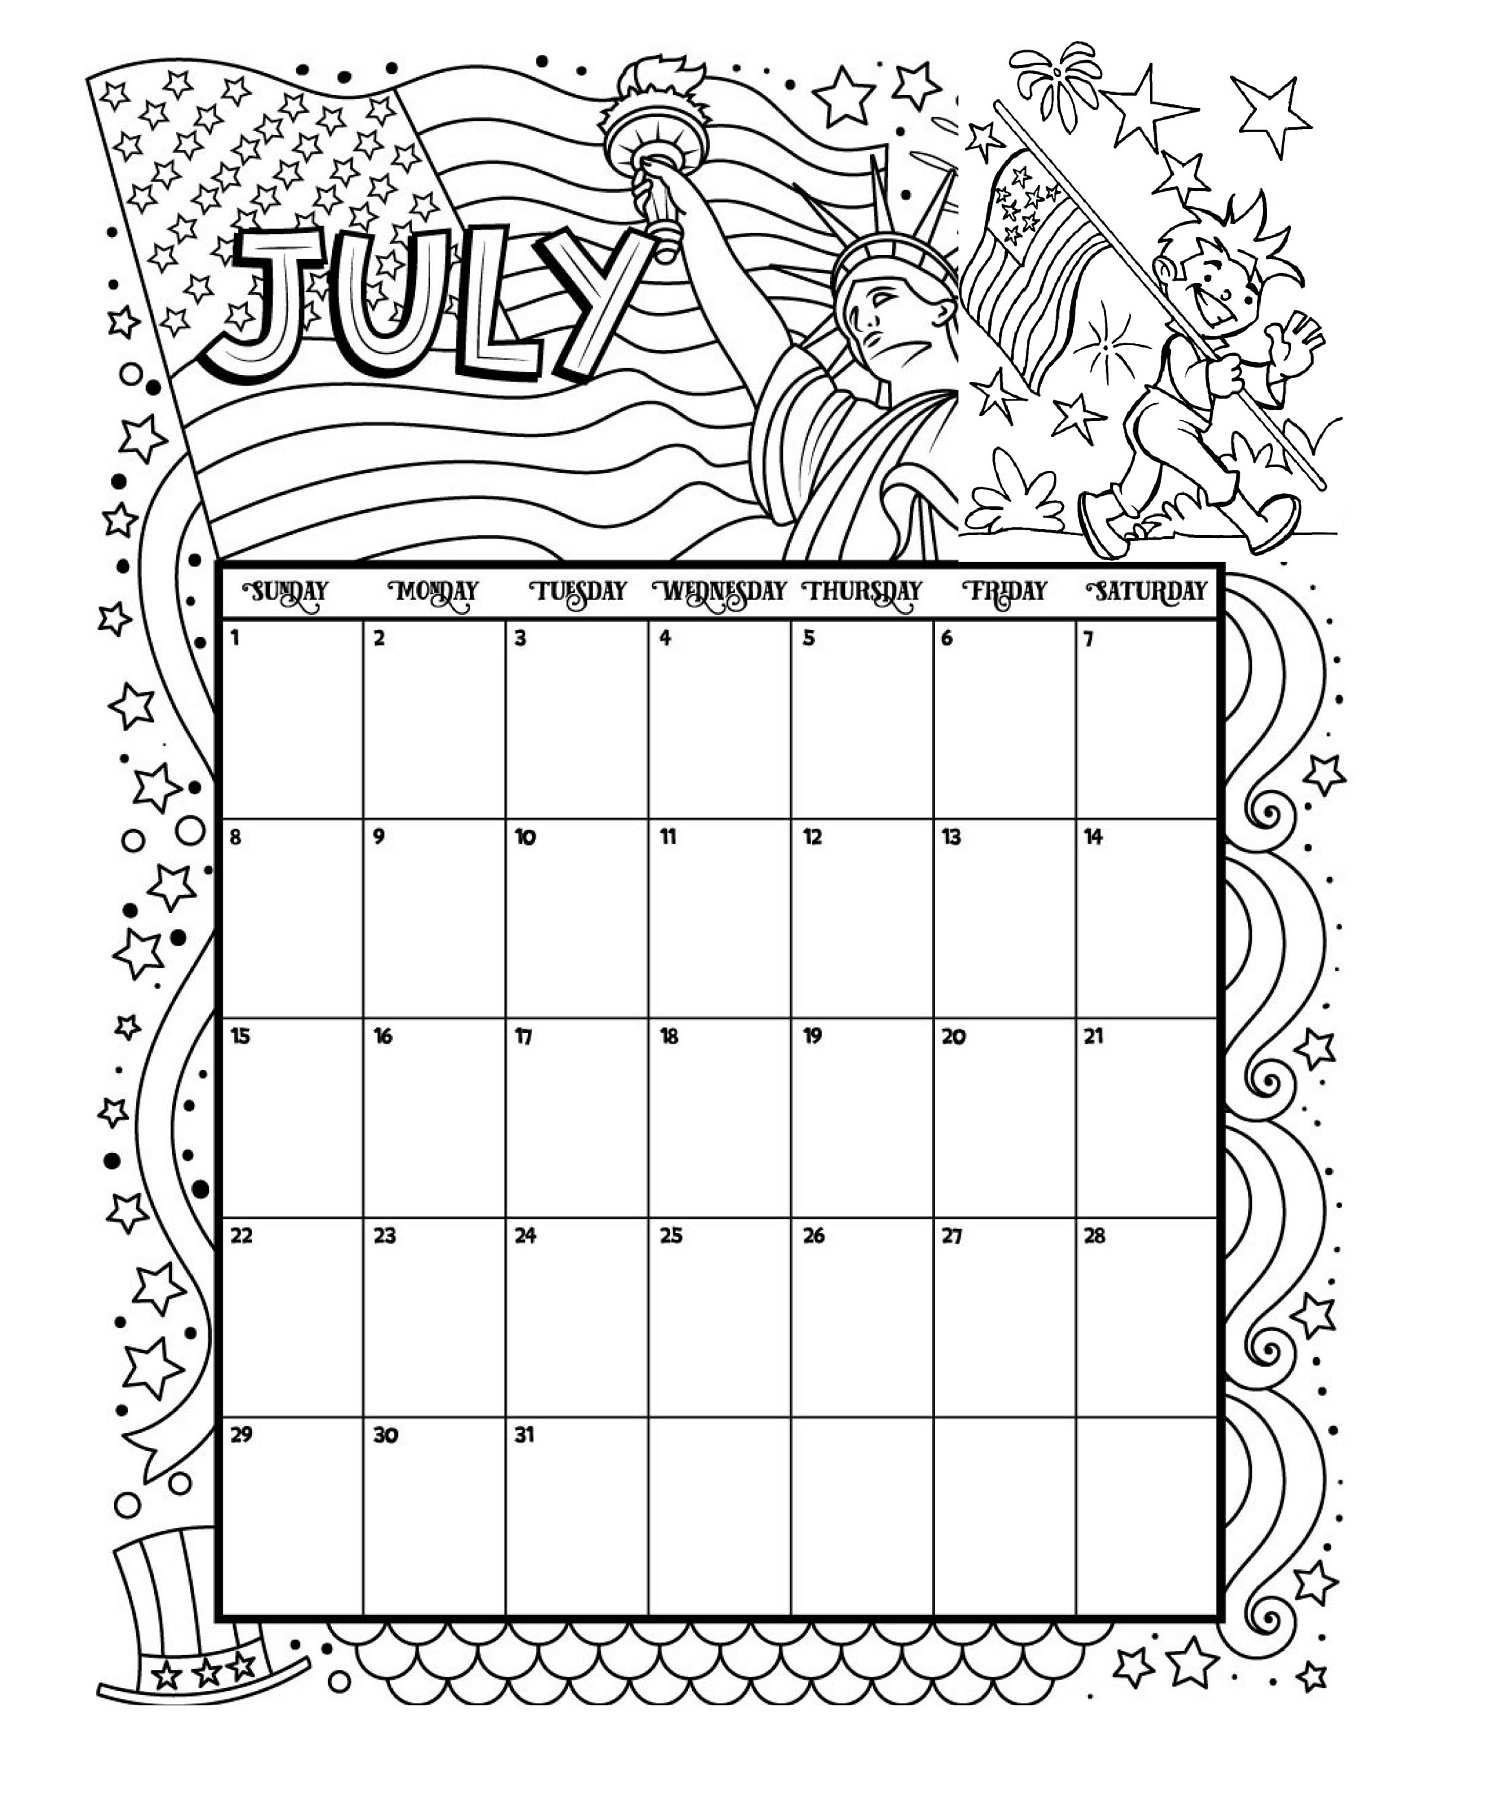 July Printable Coloring Calendar July Calendar Calendar Printable